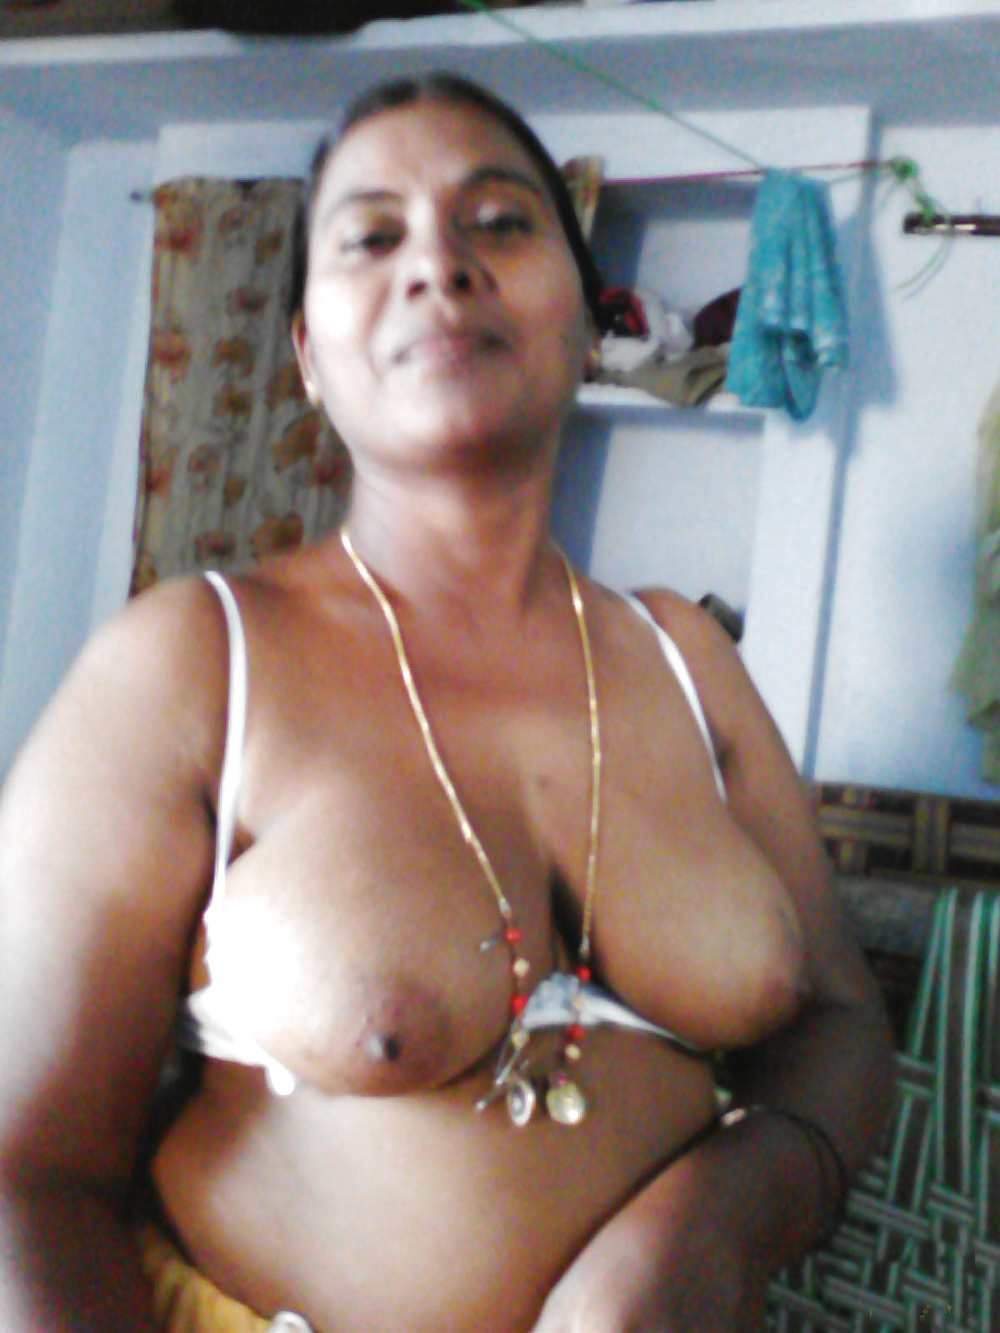 Mallu Maid Exposed Her Busty Figure For Money